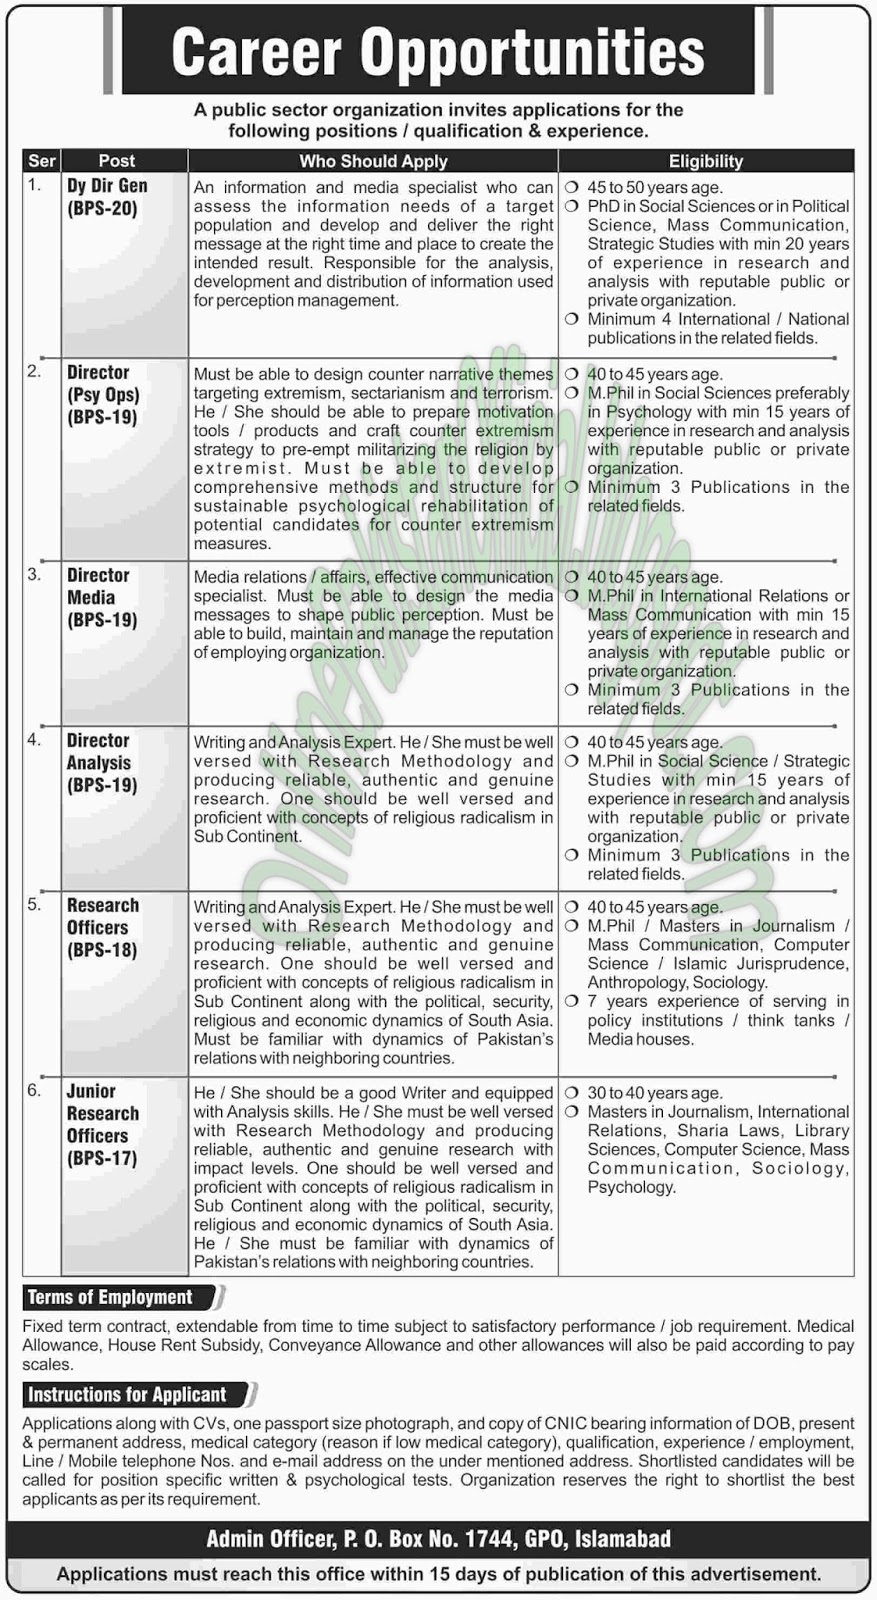 Public Sector Organization -Islamabad Latest Jobs 2016